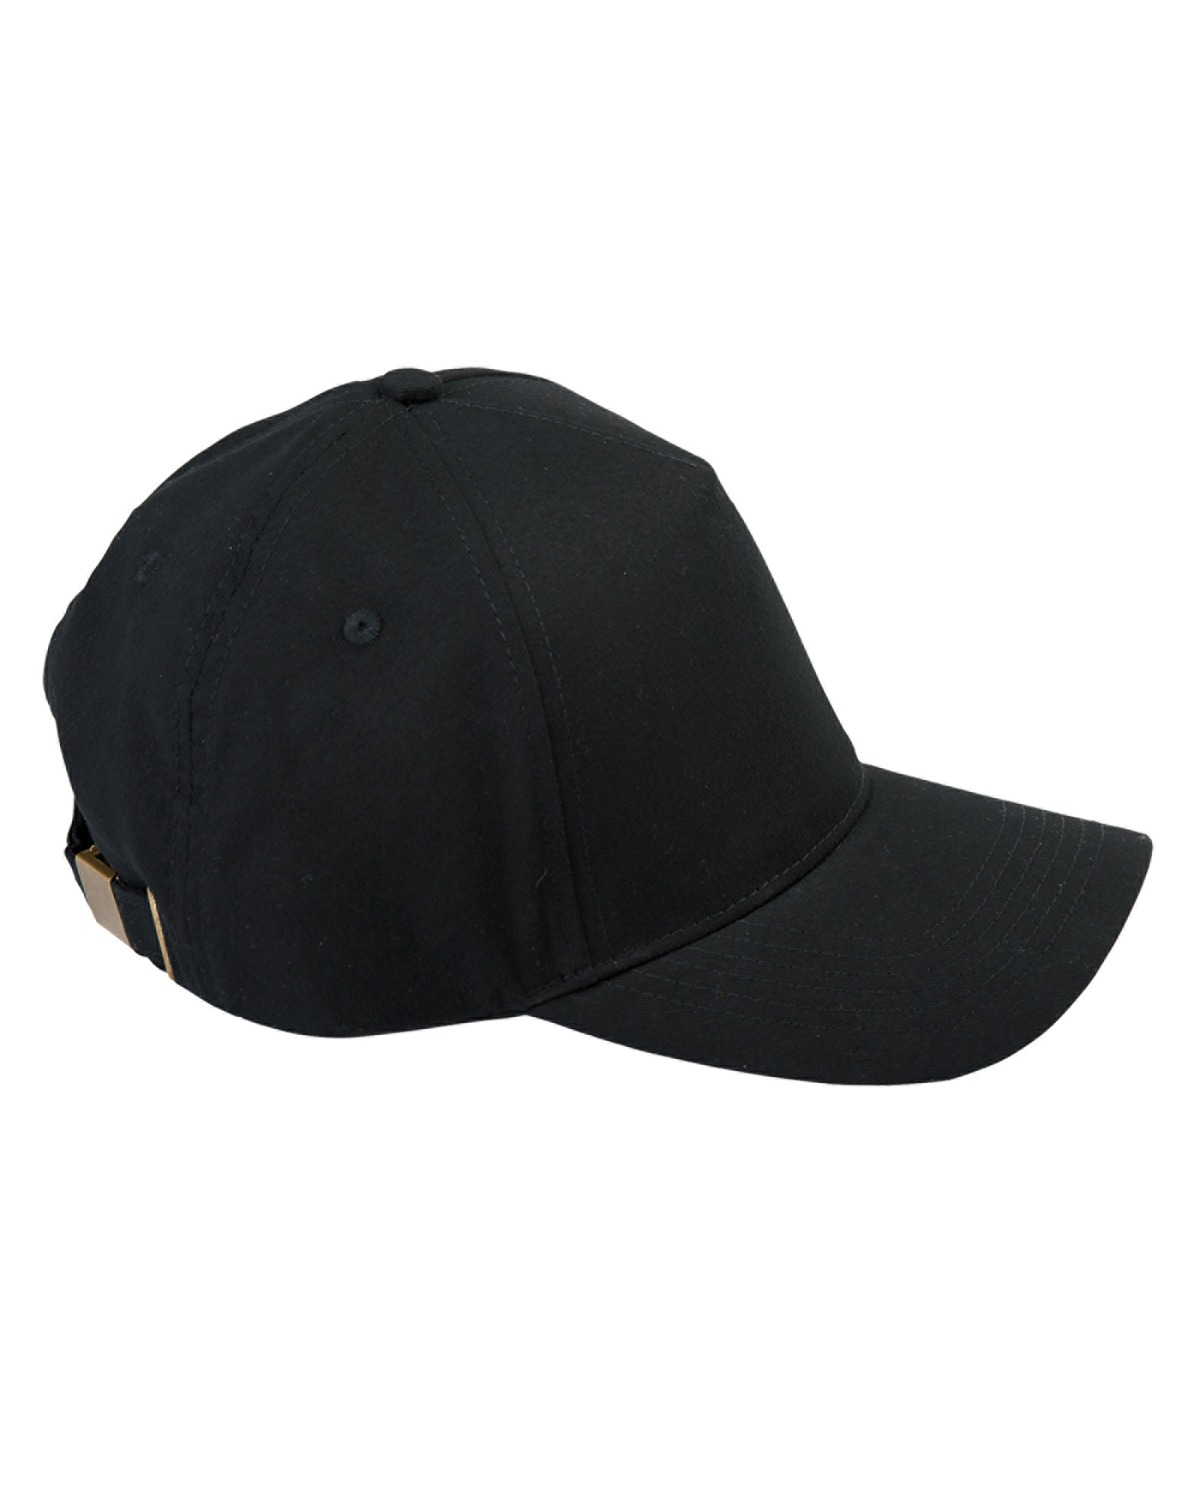 Big Accessories BX034 - 5-Panel Brushed Twill Cap